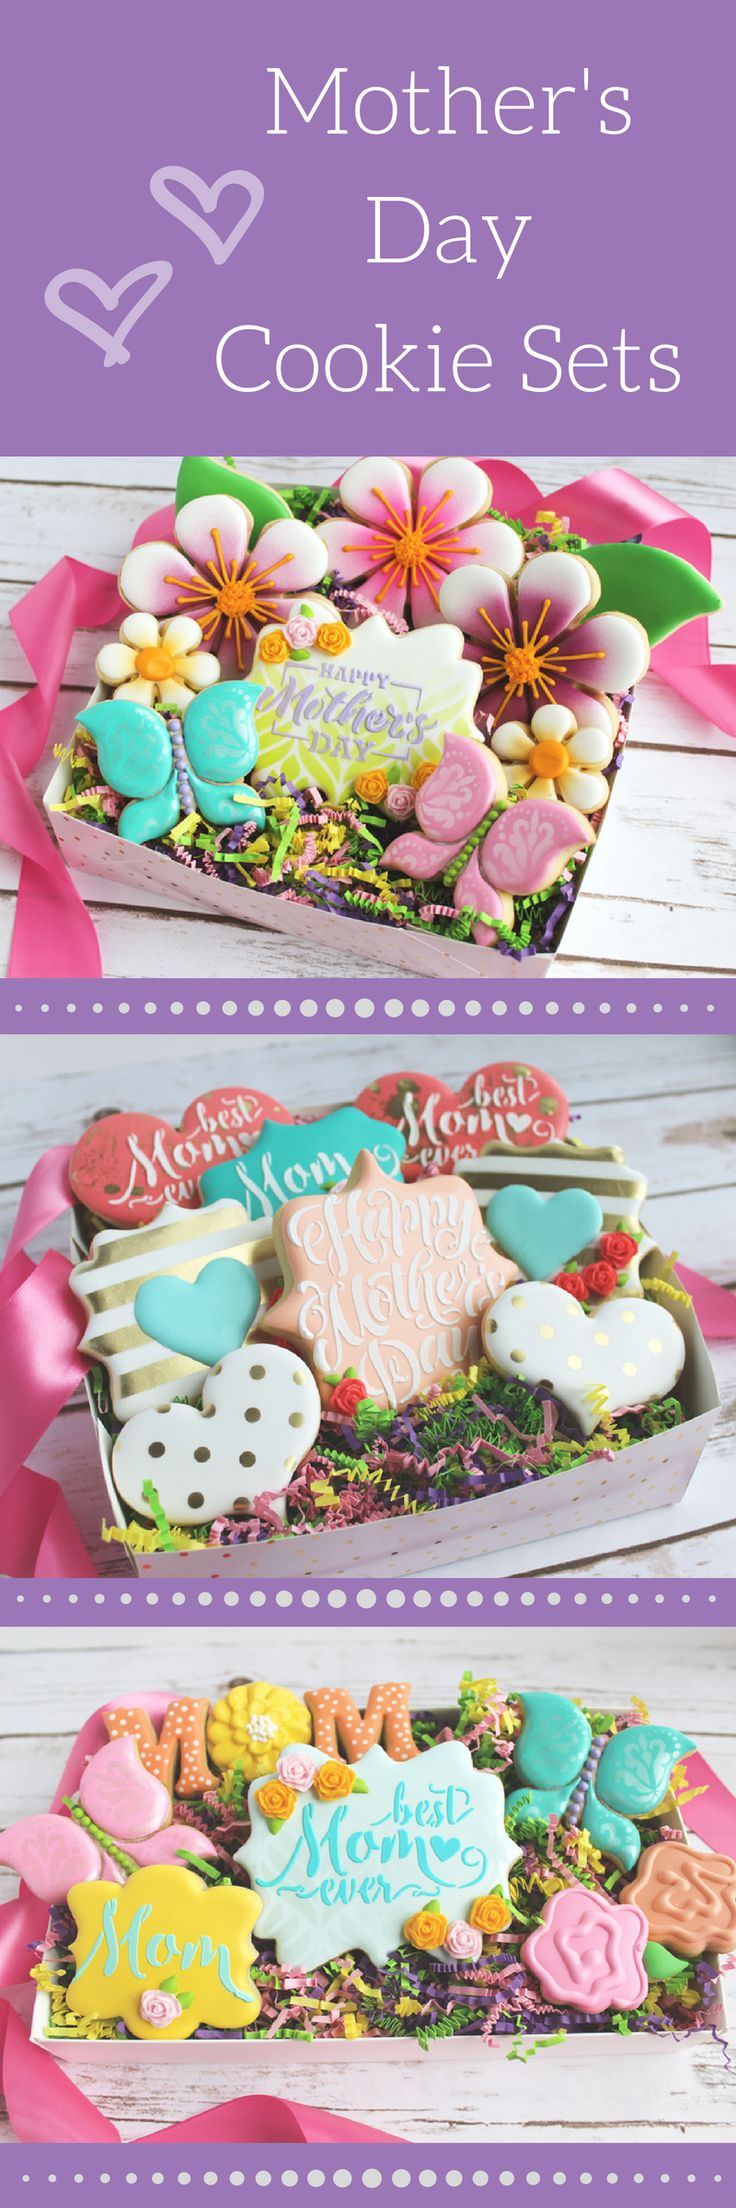 Mother's Day Best Mom Ever Sugar Cookies Set - Ready for Gift Giving - Flower Sugar Cookies, Mothers' Day, Floral Cookies, #ad #etsy Spring Cookies